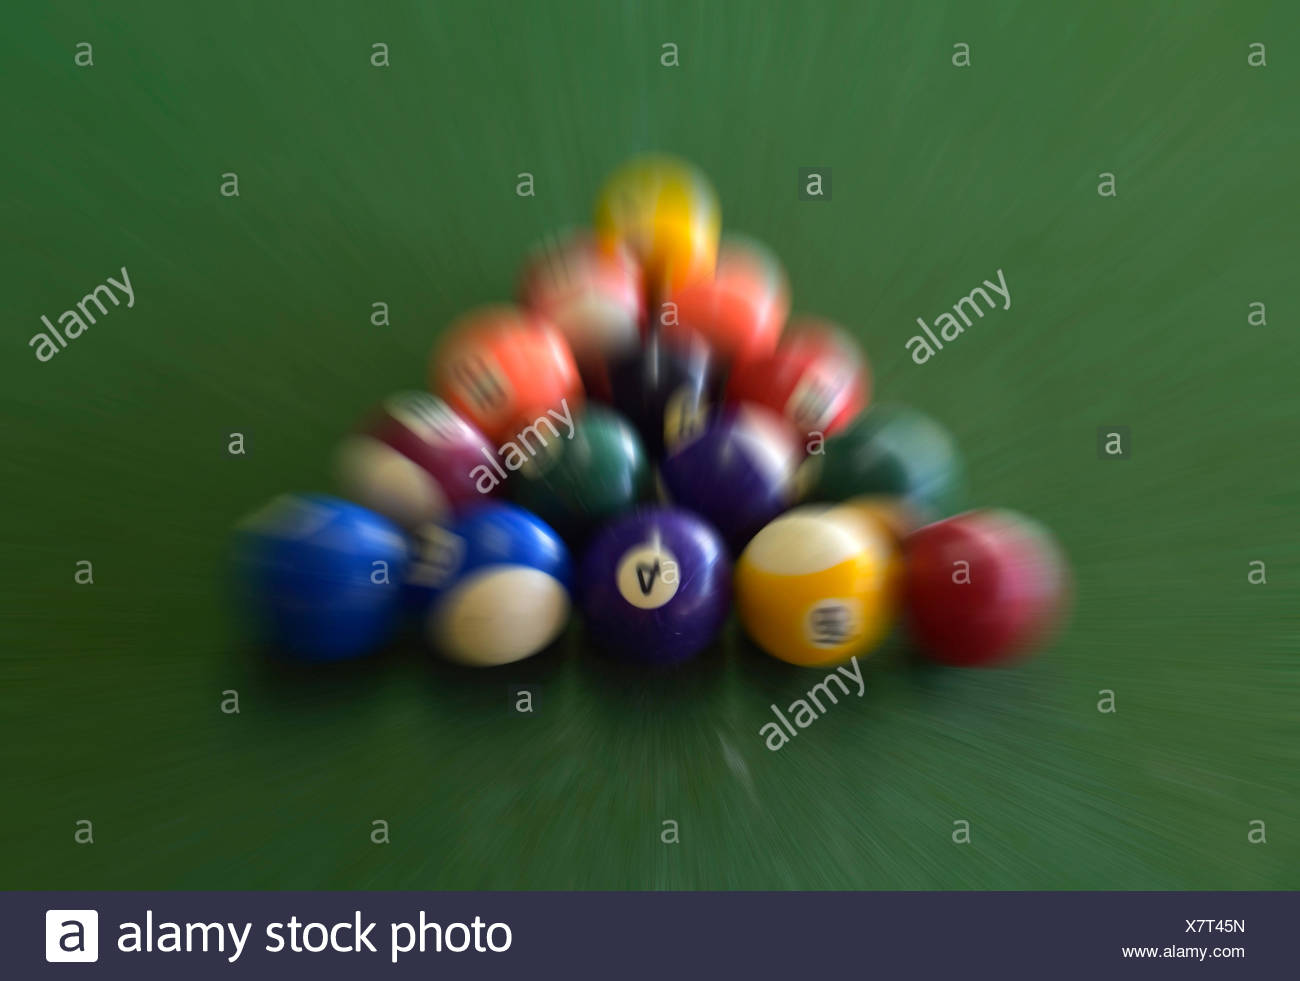 wiki file wikipedia table balls pool billiards